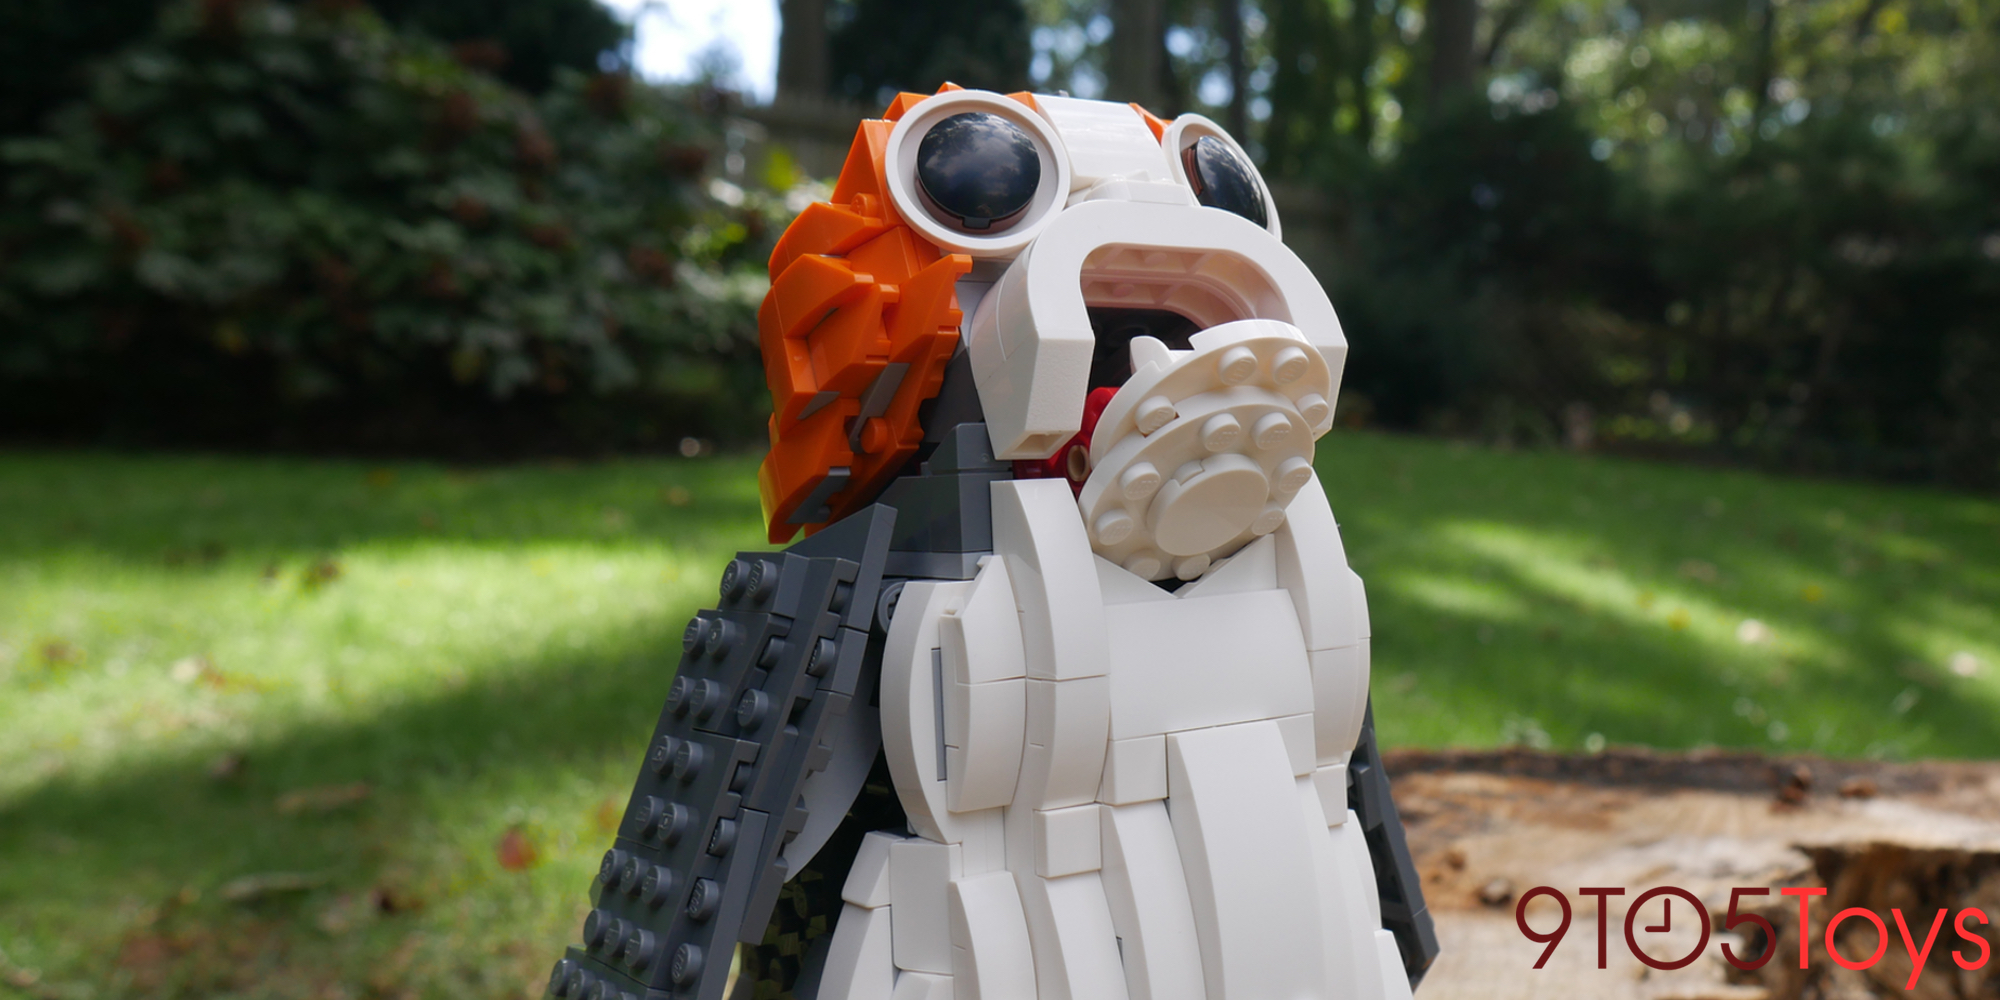 Review: LEGO's life-size Porg is one of the cutest kits yet & a must-have for Star Wars fans